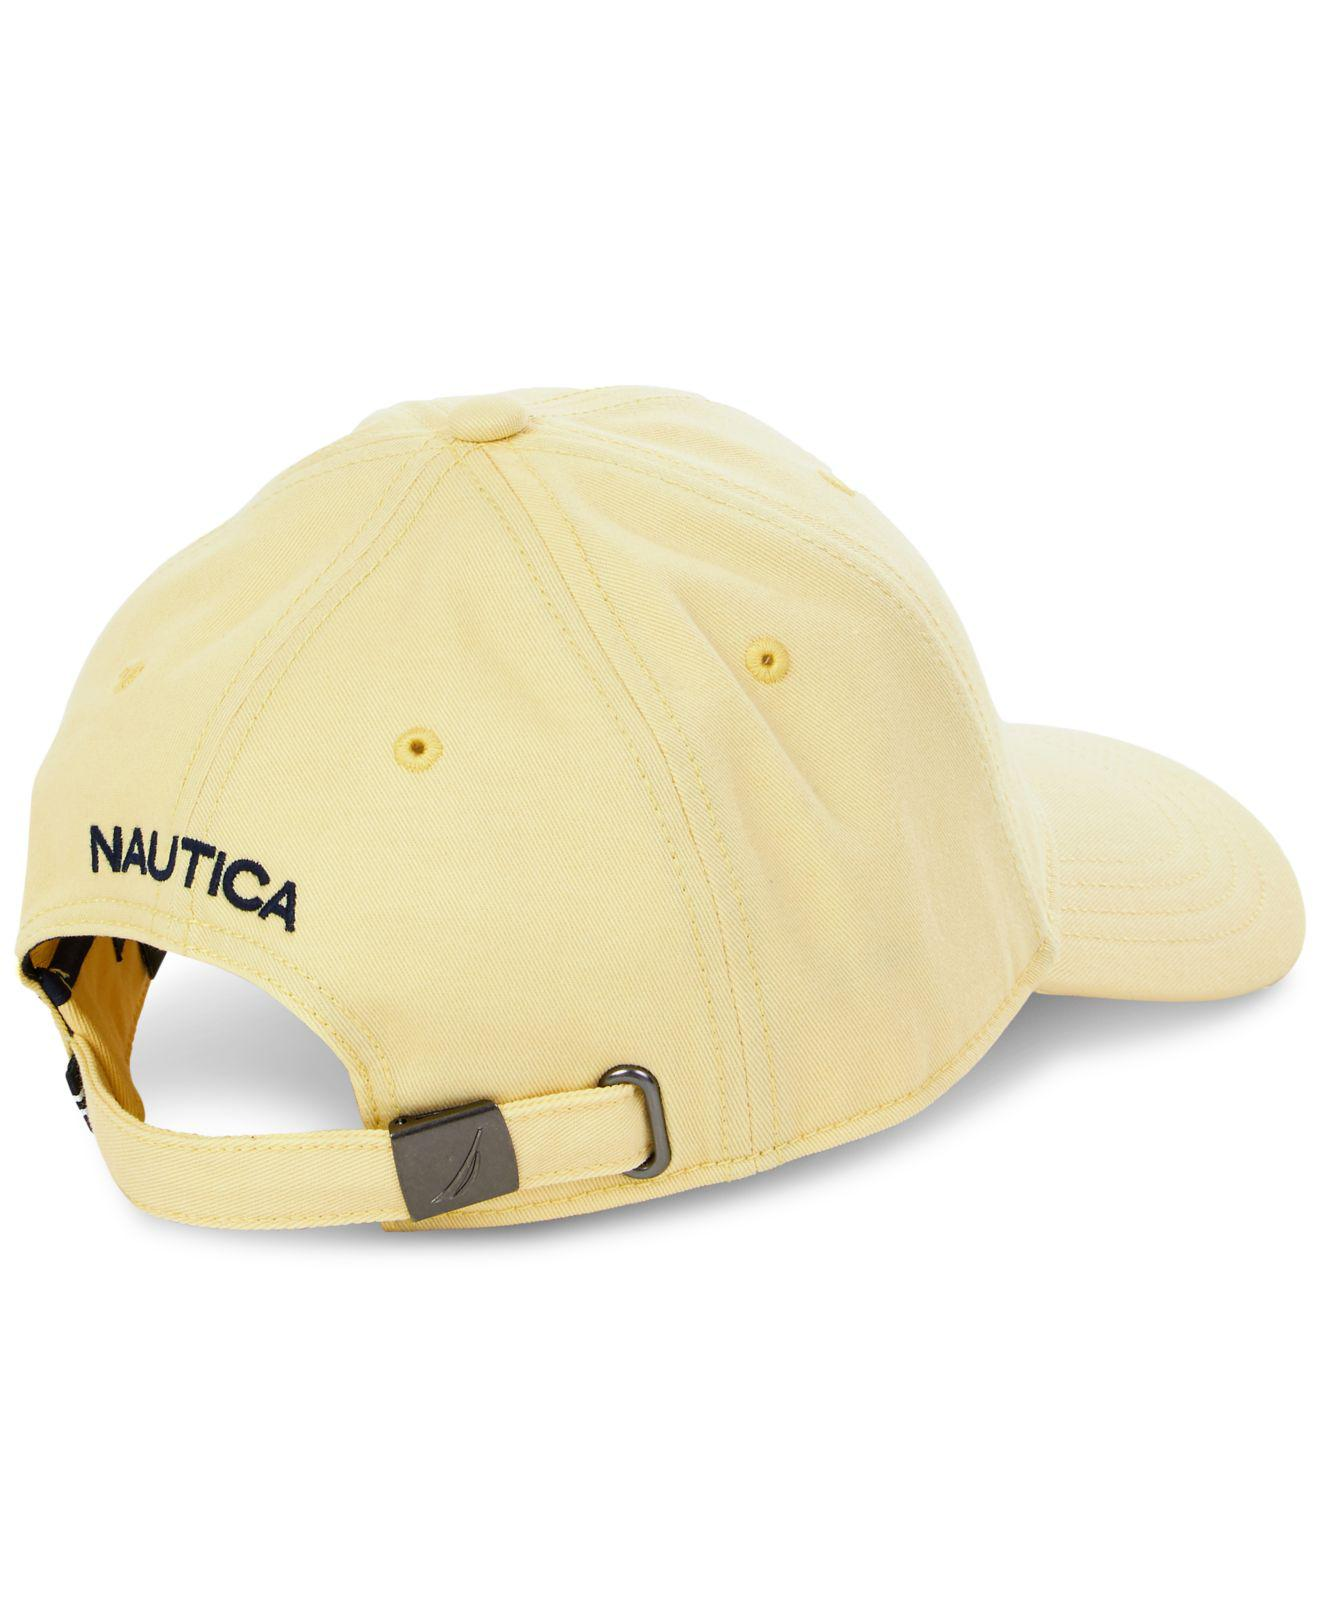 e9a55db775b Lyst - Nautica J Class Embroidered Hat in Yellow for Men